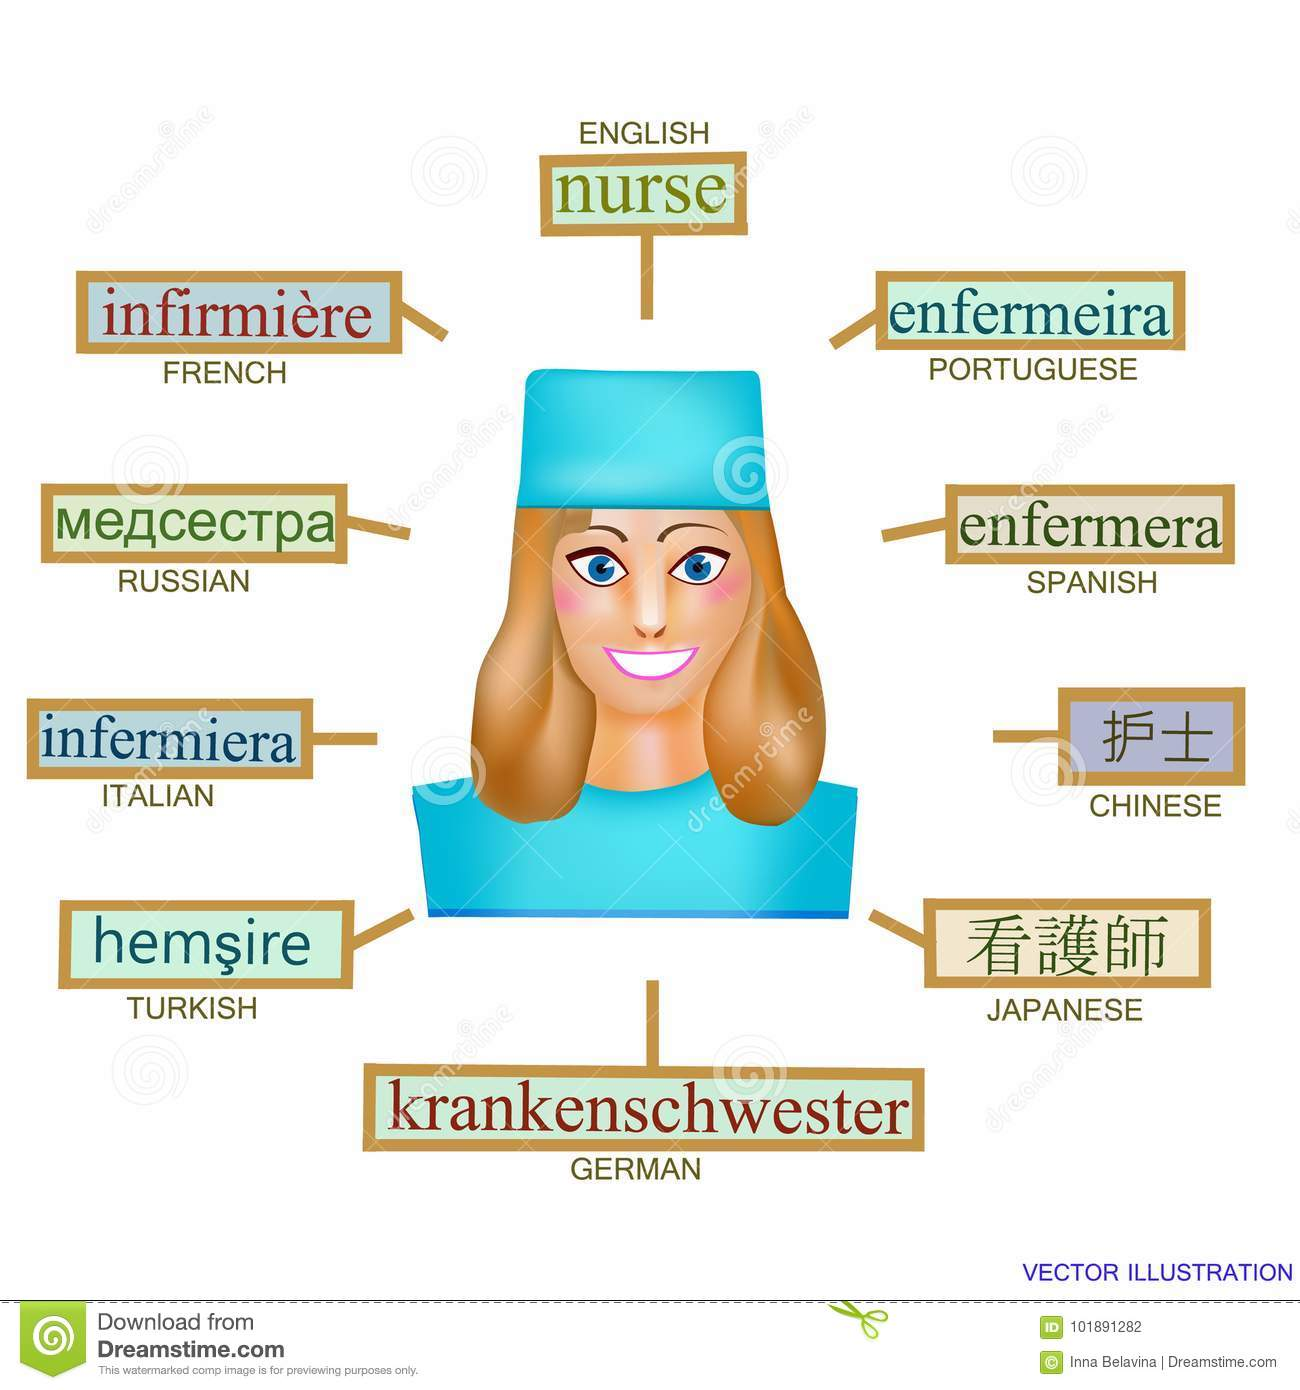 Avatar of a woman in the professional form of nurse. Image for.